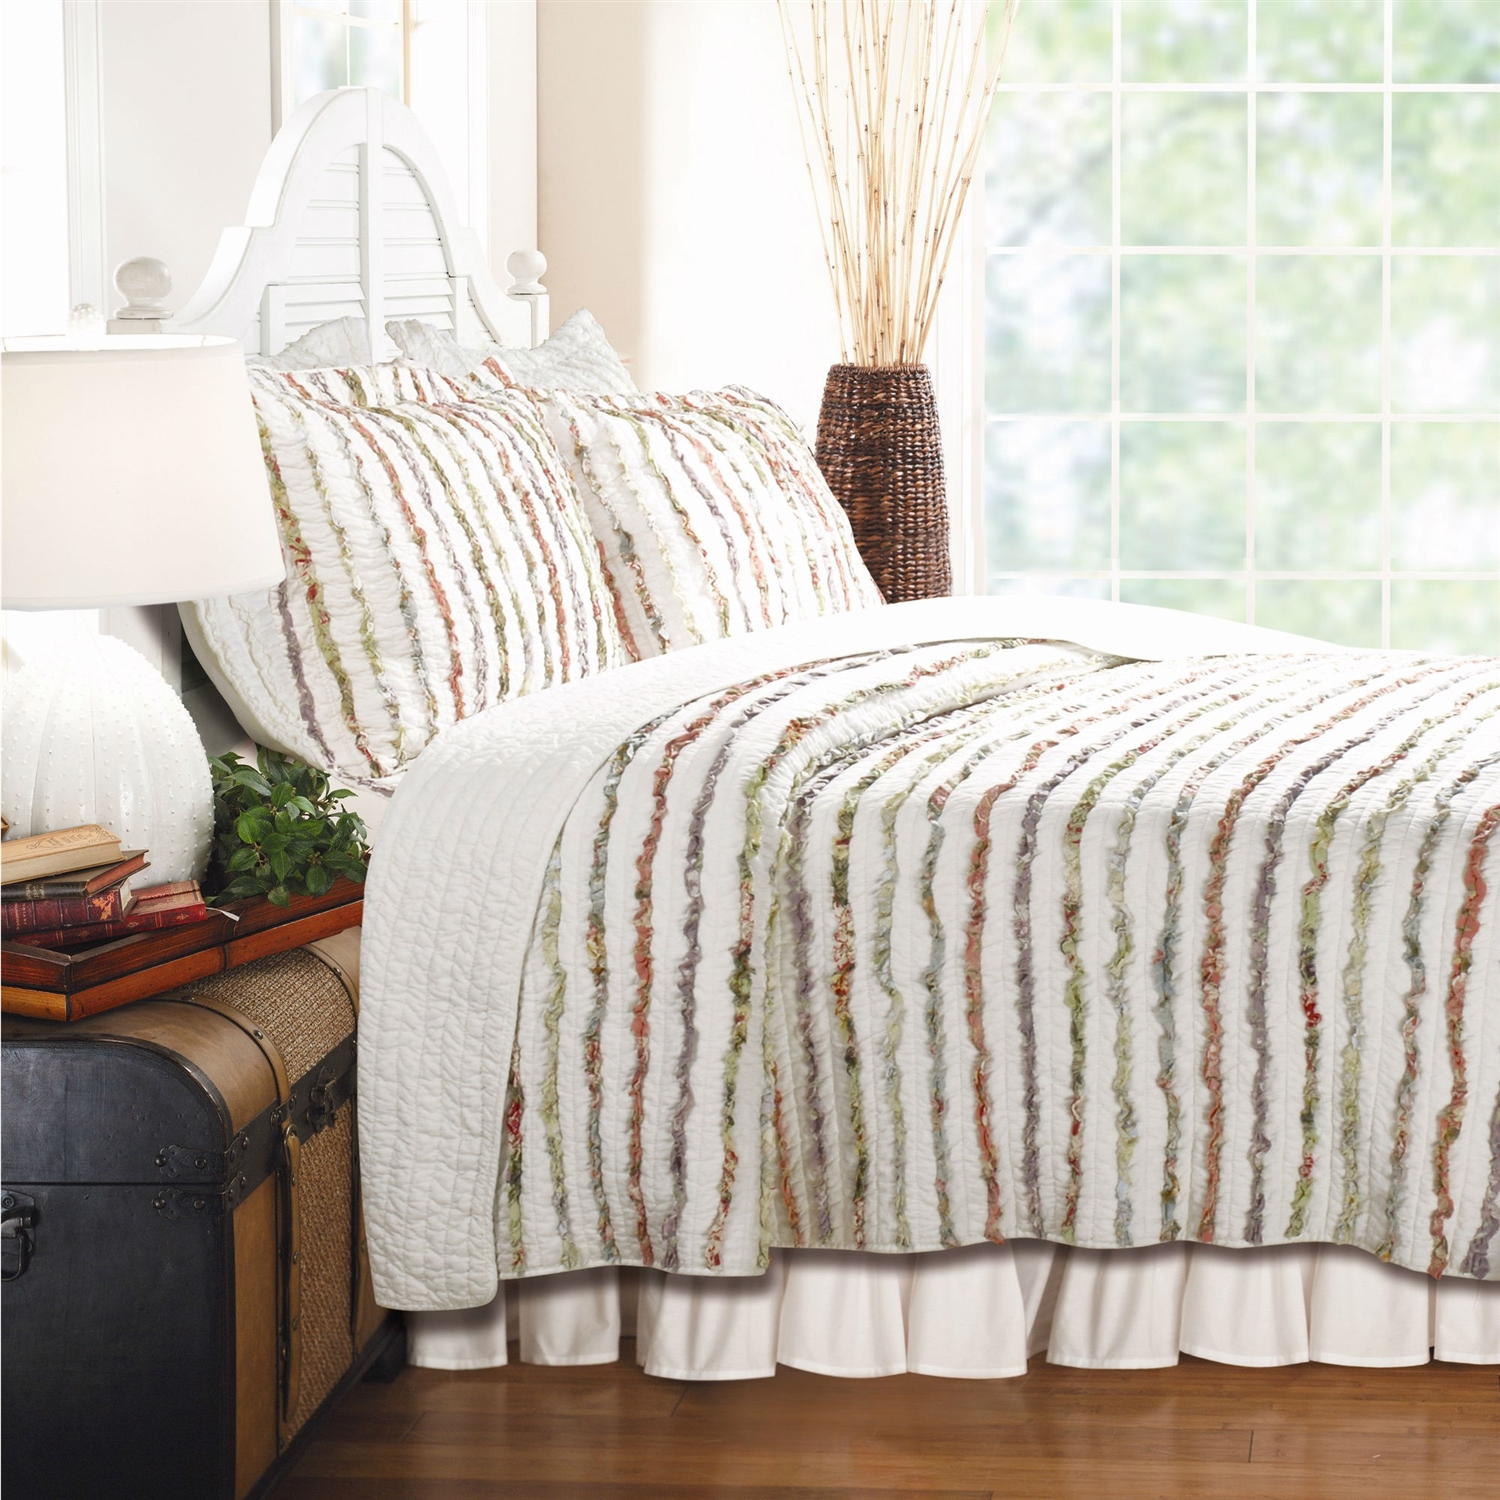 King 100% Cotton 3 Piece Oversized Quilt Set With Ruffle Stripes